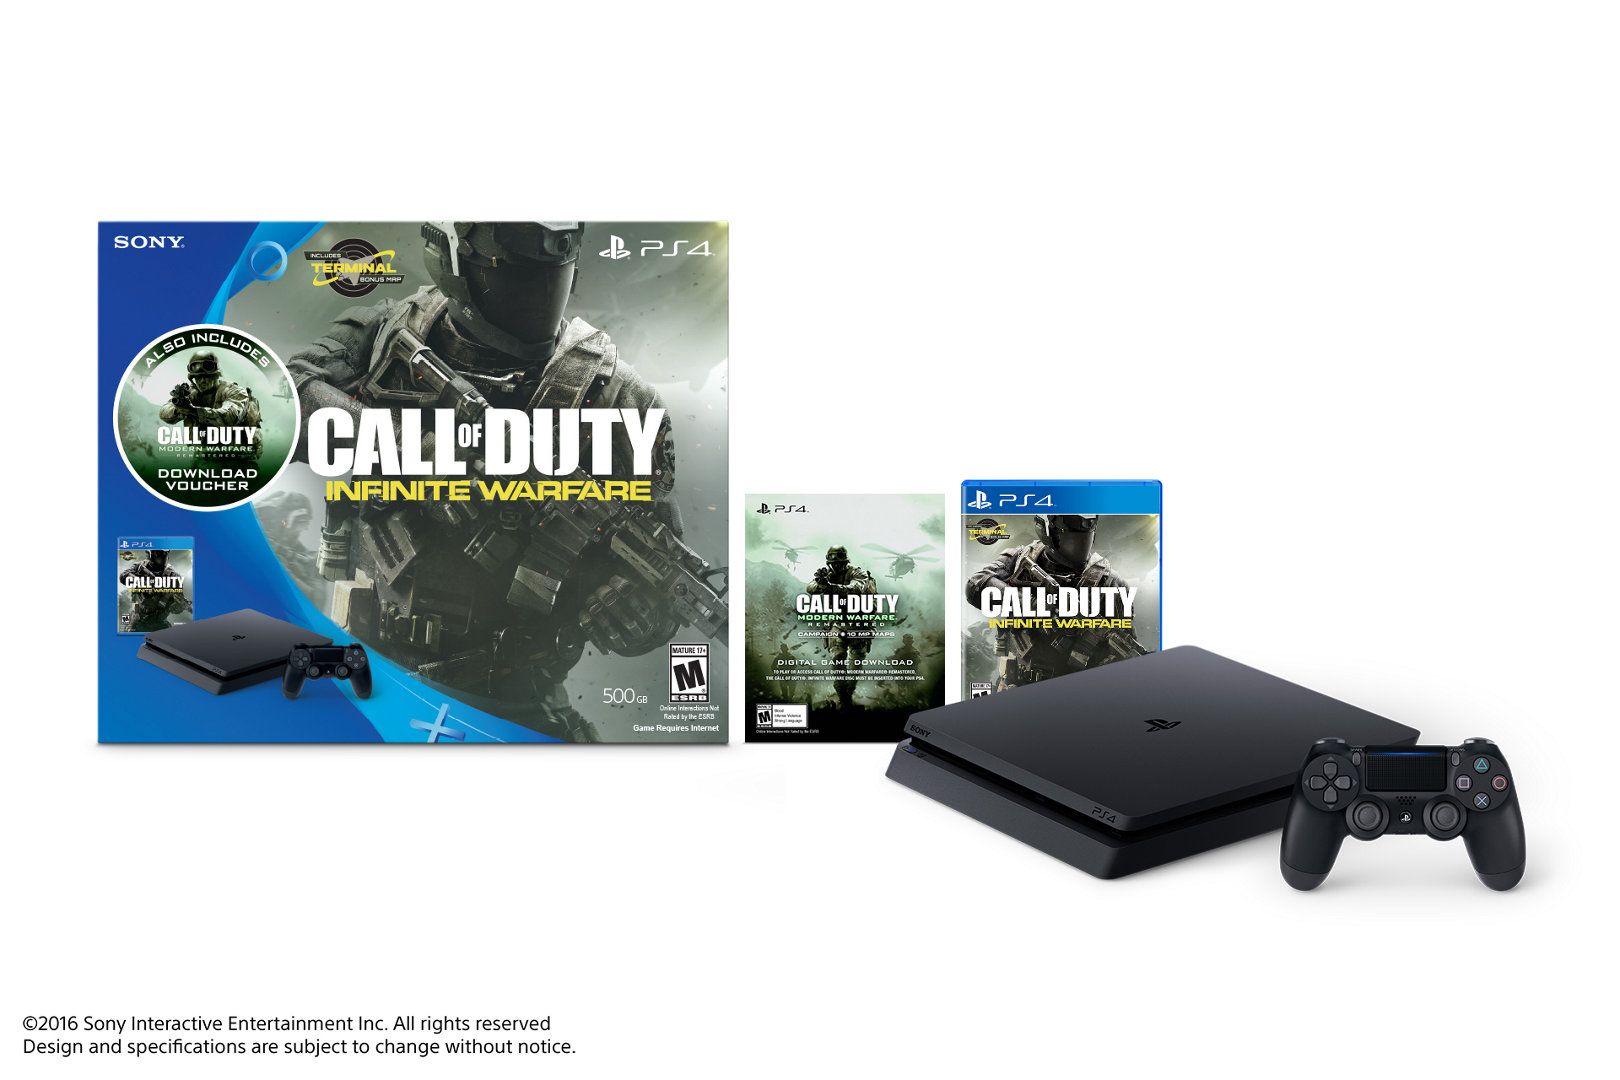 Call Of Duty Infinite Warfare Ps4 Bundle Playstation Sony 4 Slim 1 Tb Cuh 2016b Black Ops Iii Playstation4 Buy Now